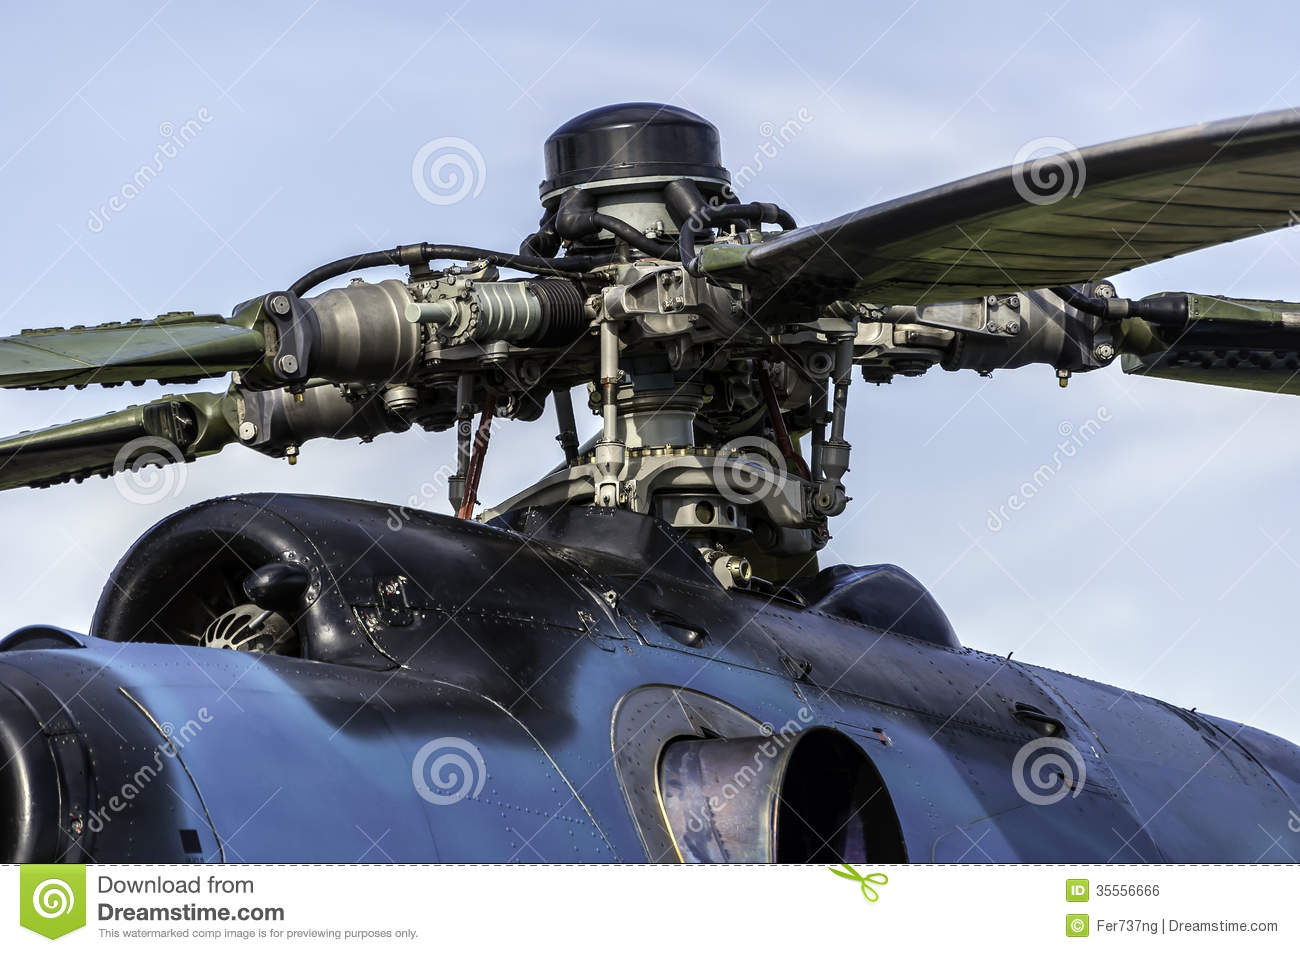 bell helicopter prices with Royalty Free Stock Image Helicopter Engine Close Up View Rotor Image35556666 on Stock Image Aircraft Instruments Set Six Avionics Eps Vector Illustration Image33549111 in addition Royalty Free Stock Images Drawing Helicopter Image8427989 moreover Coffin additionally R44 Raven additionally Editorial Stock Image Vintage Huey Helicopter Monroe Nc November Uh H Performing Warbirds Over Monroe Air Show Monroe Nc Image46780579.